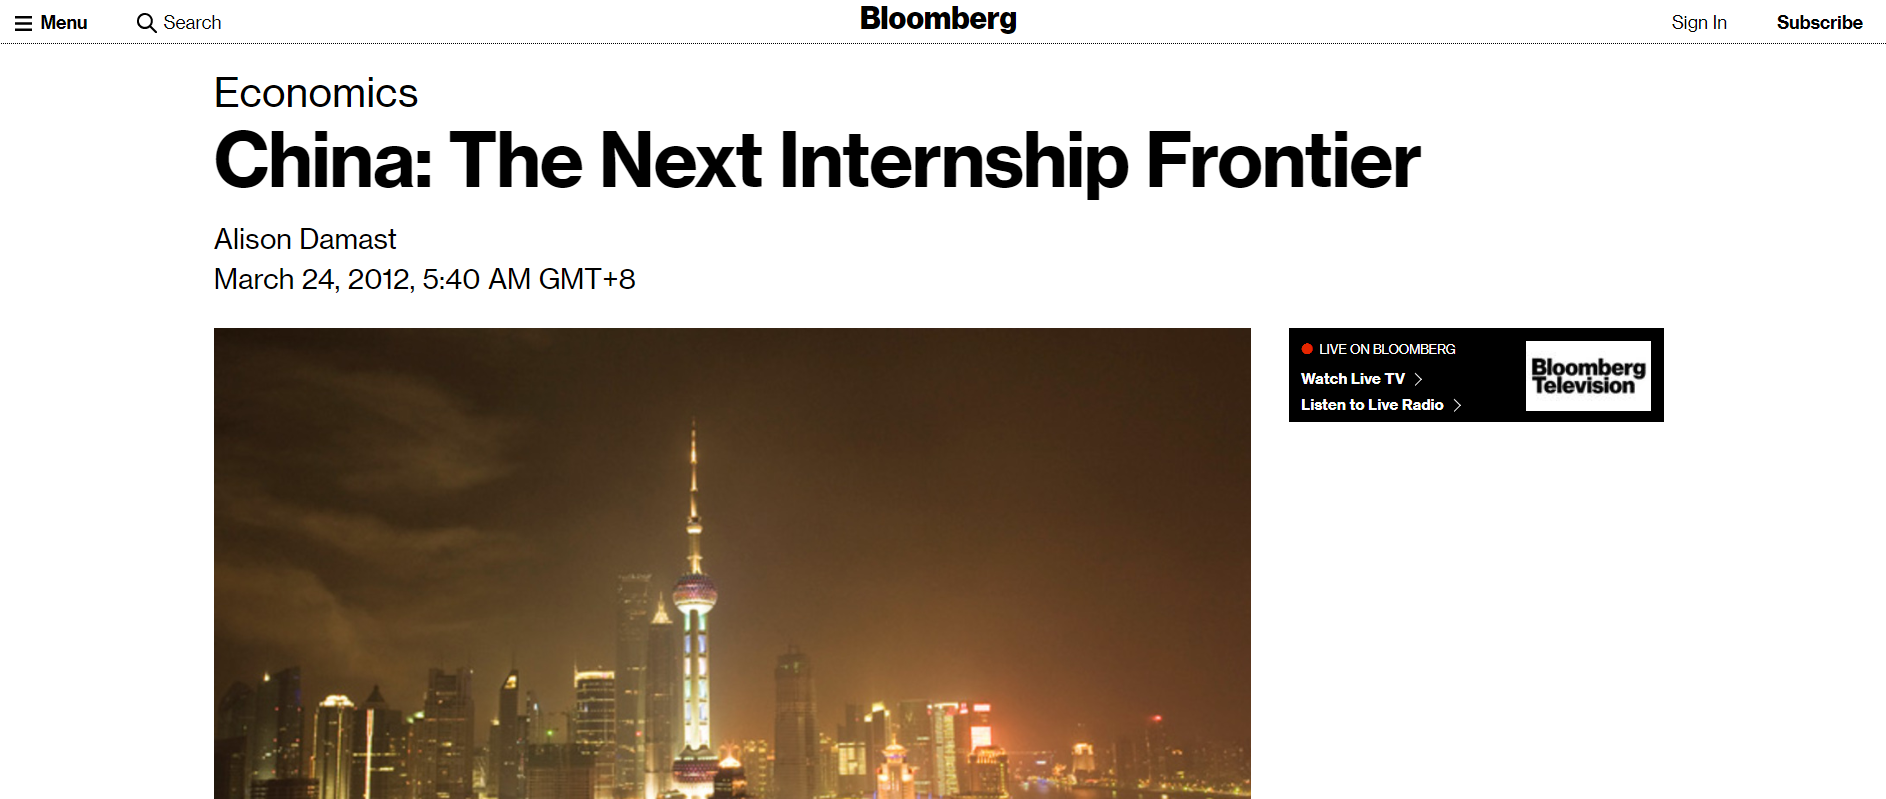 bloomberg article